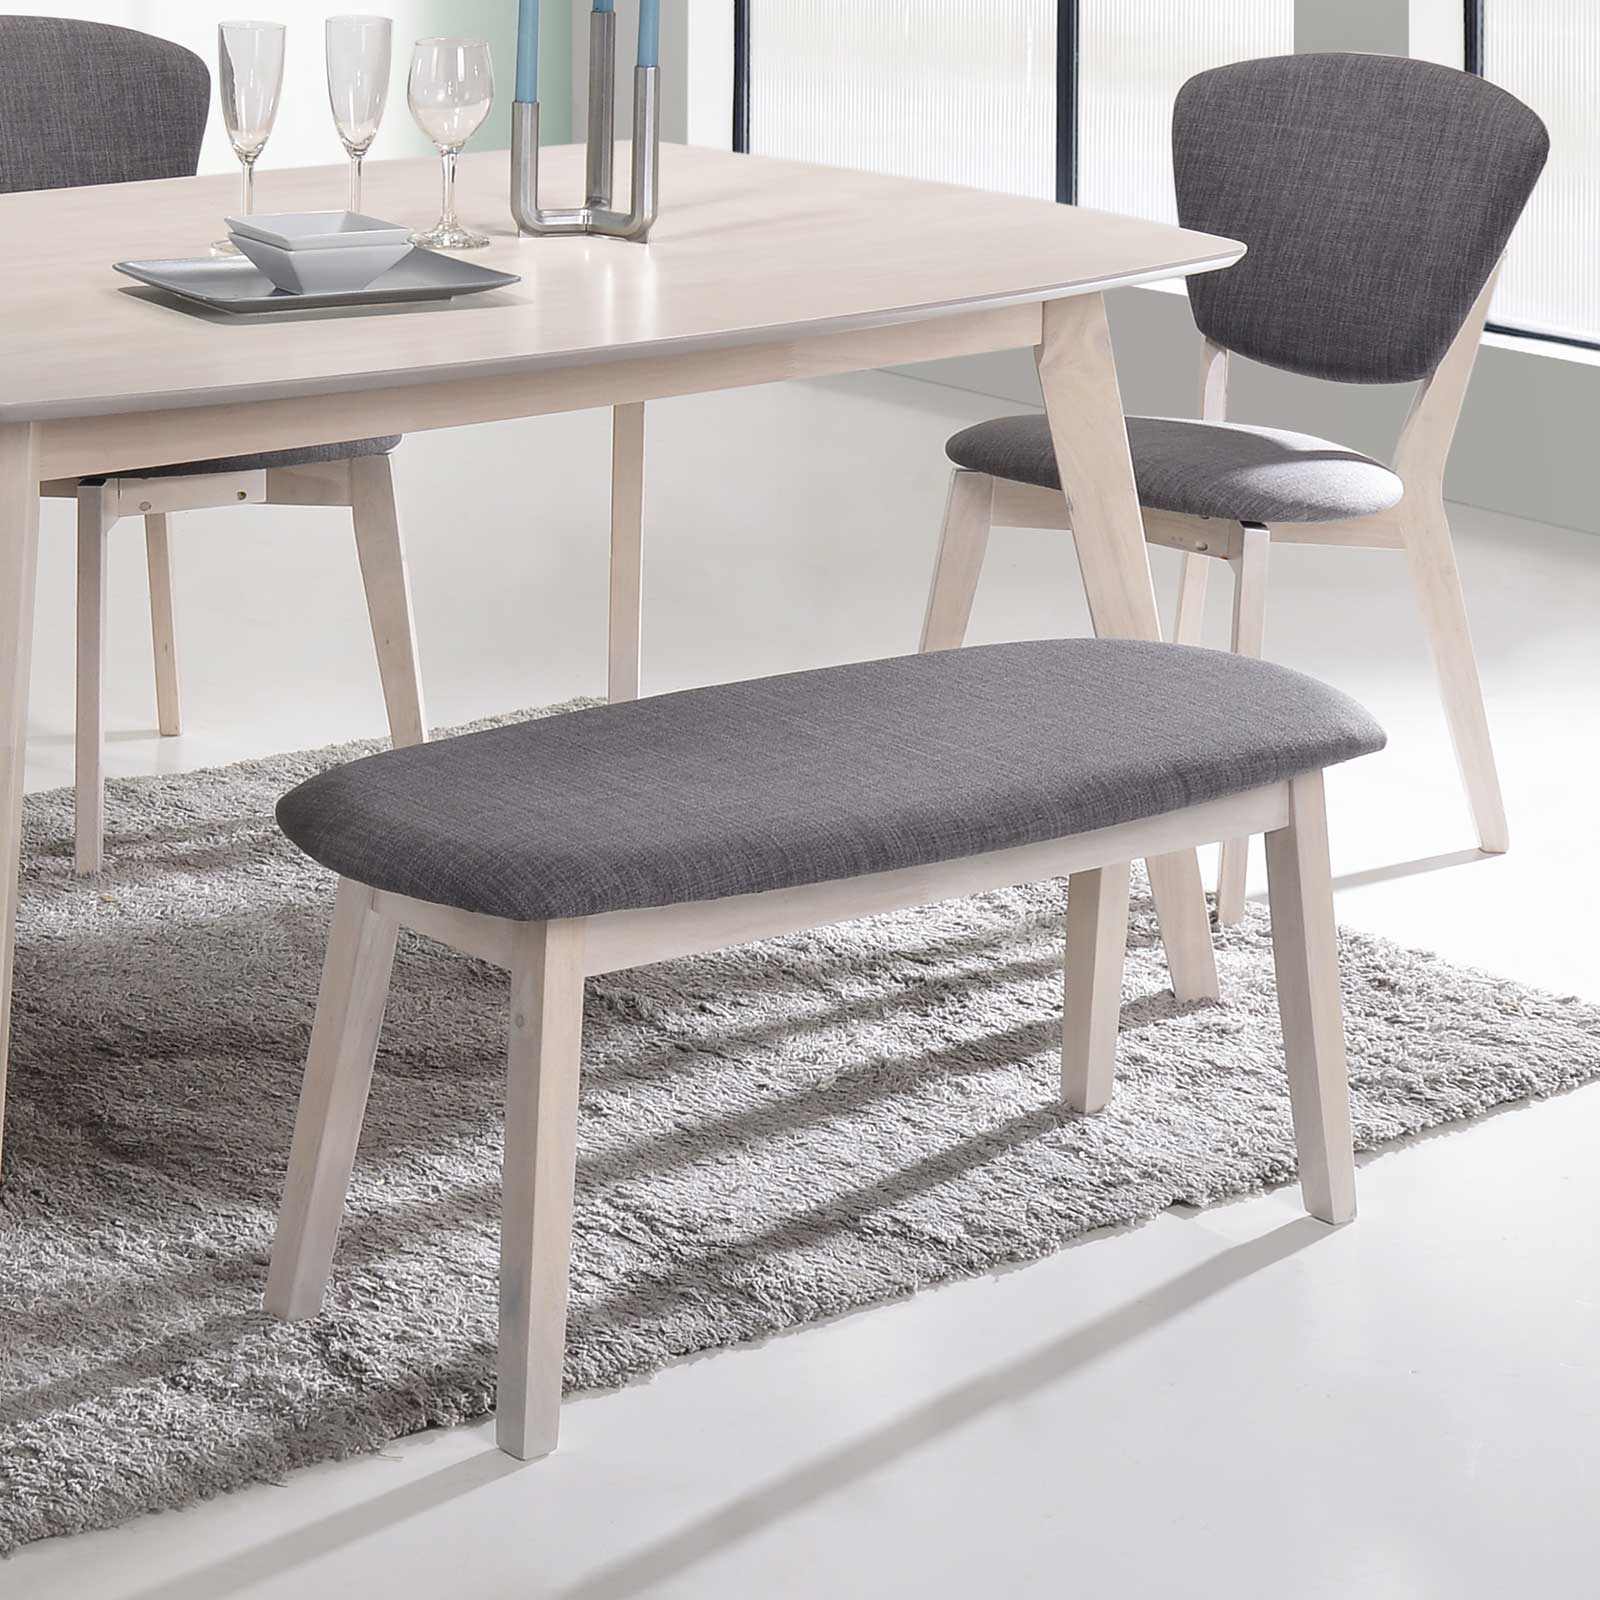 Table With Bench Seats: 6 Piece Scandinavian Rubberwood Dining Set With 1.5m Table